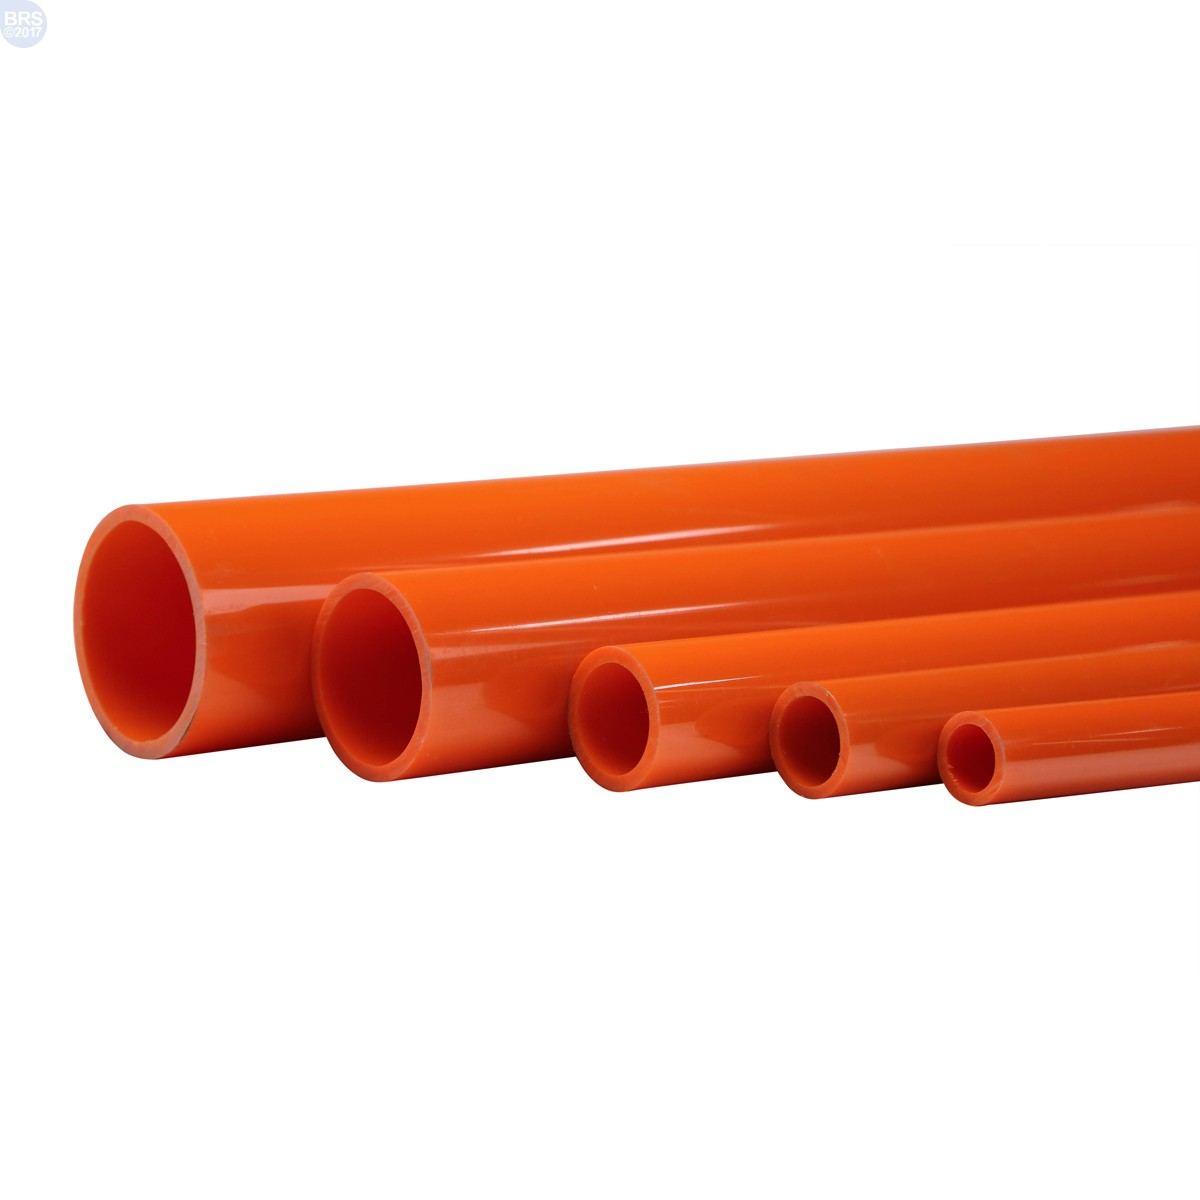 orange furniture grade schedule 40 pipe 5 ft